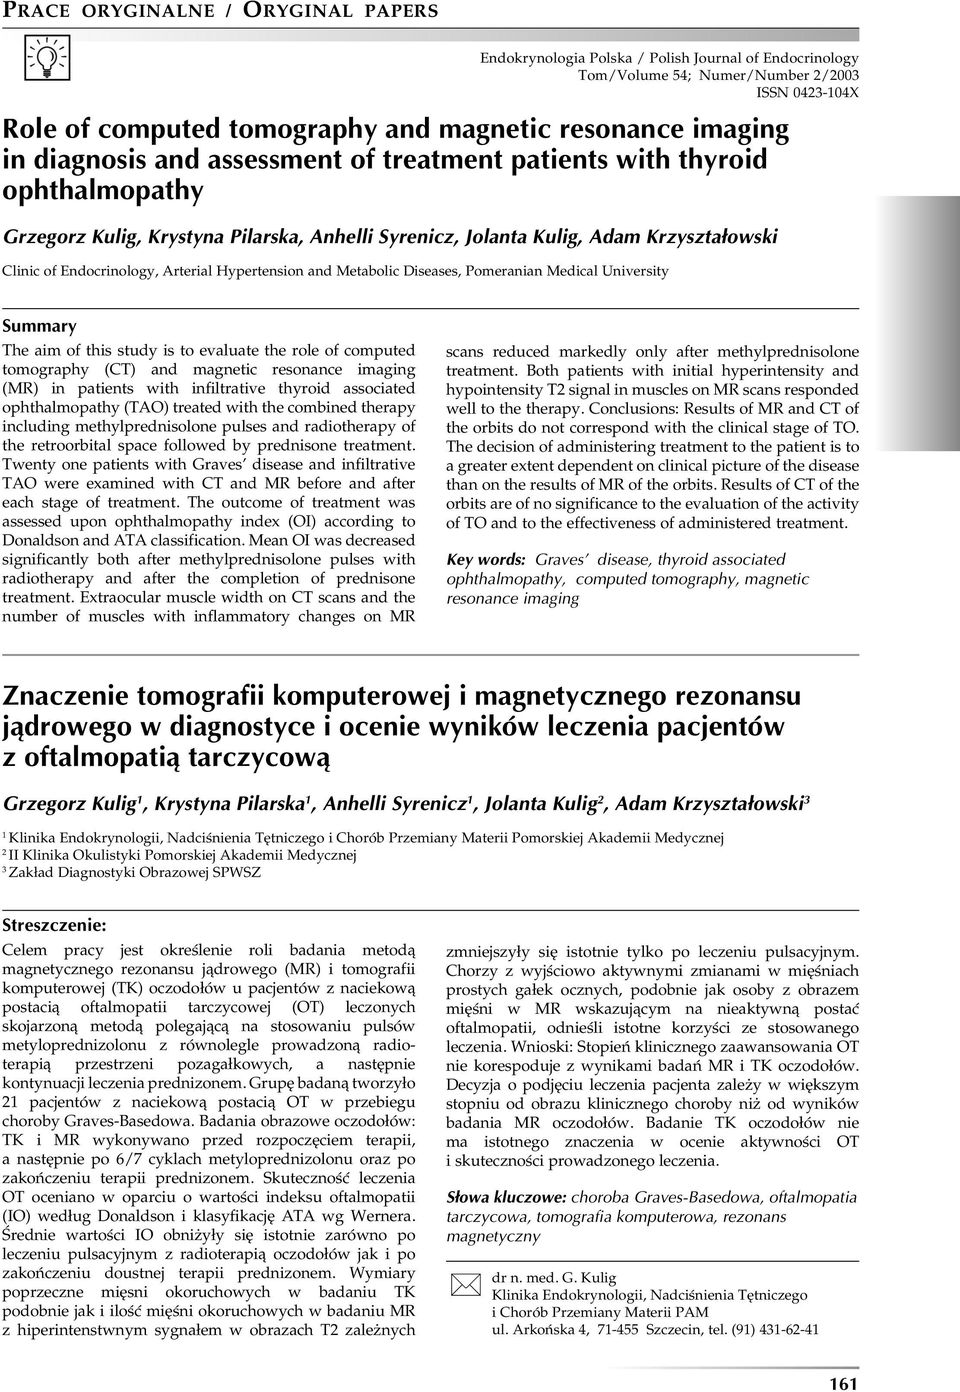 Metabolic Diseases, Pomeranian Medical University Summary The aim of this study is to evaluate the role of computed tomography (CT) and magnetic resonance imaging (MR) in patients with infiltrative